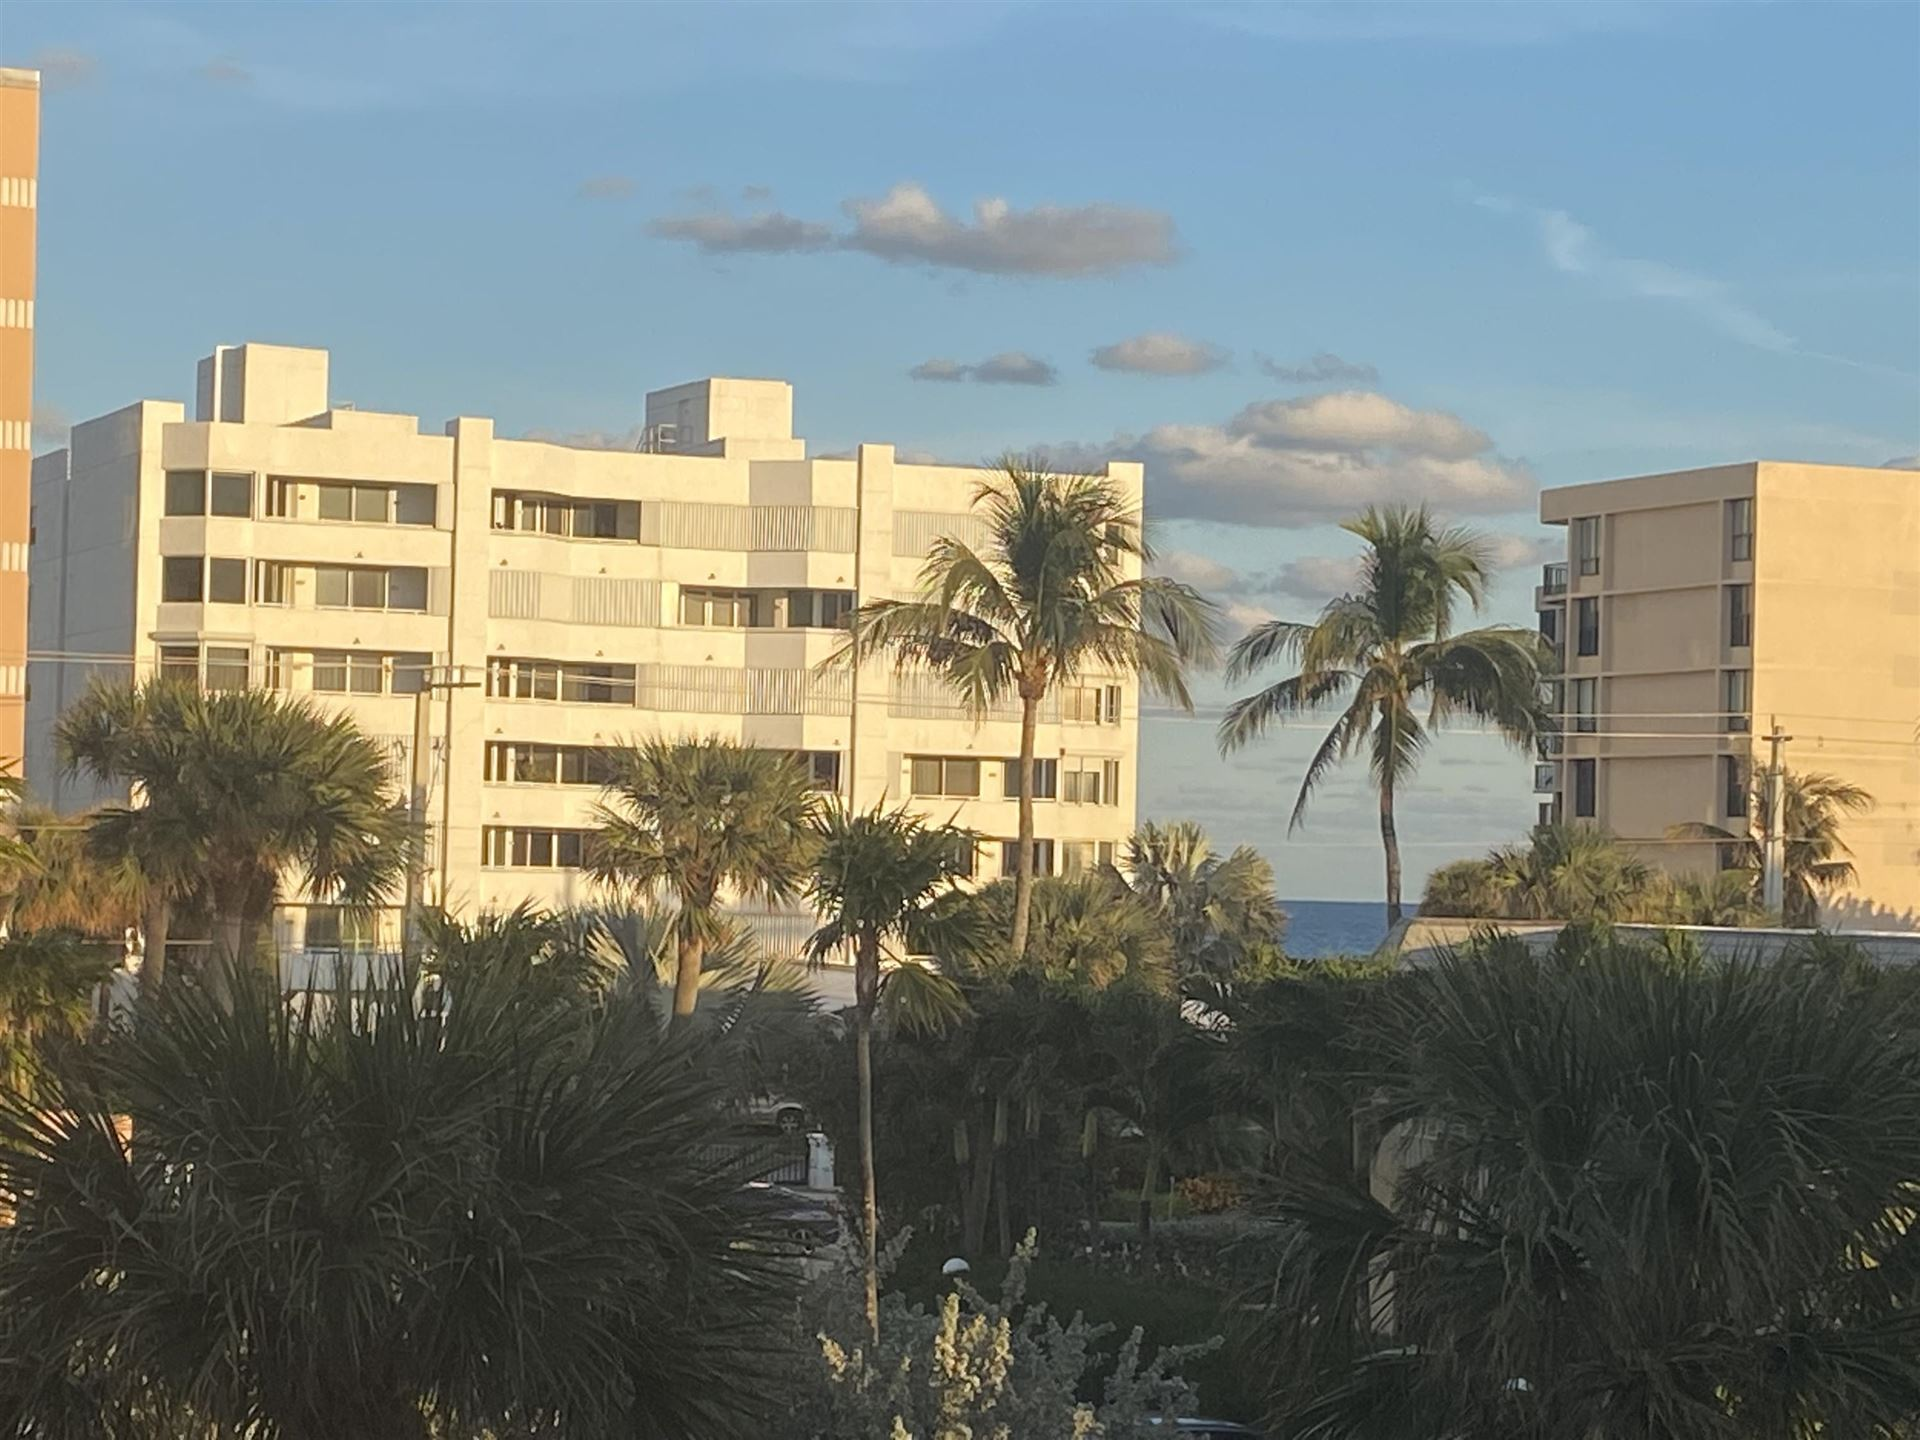 3589 S Ocean Boulevard #305, South Palm Beach, FL 33480 - #: RX-10685921